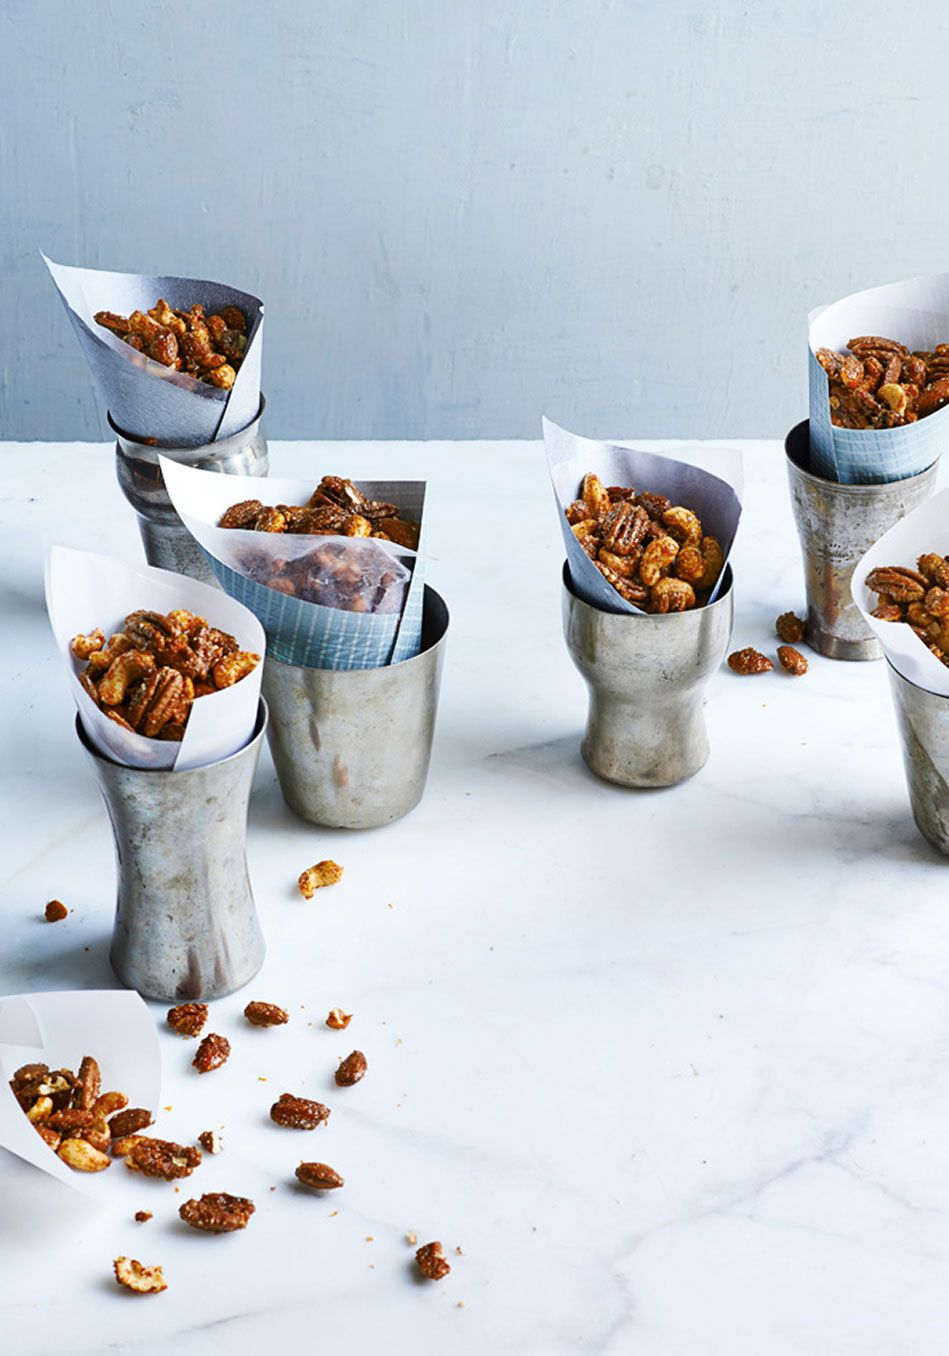 Spicy Candied Nuts Recipe